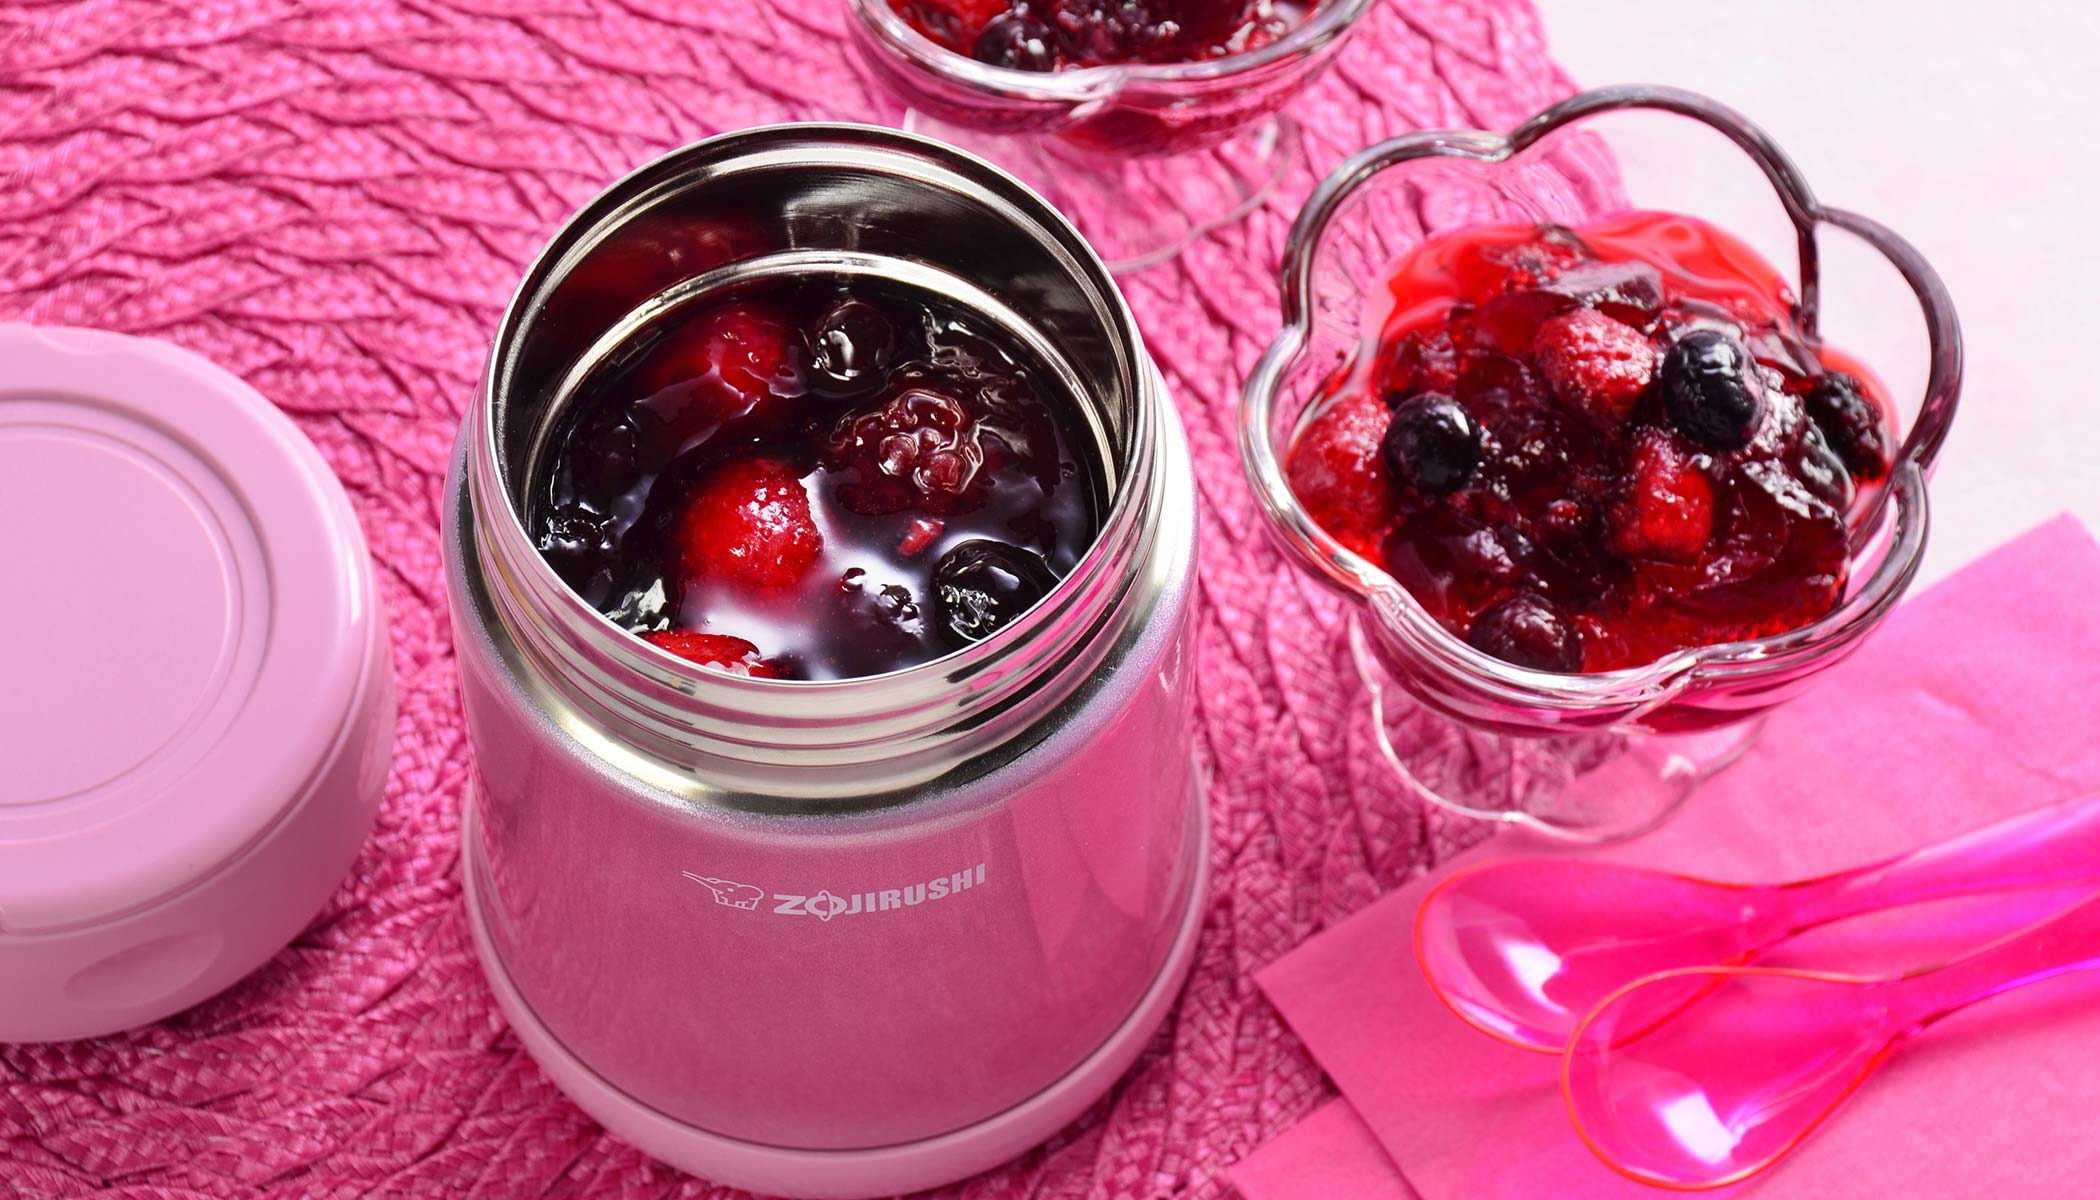 Red Cranberry Gelatin with Mixed Berries